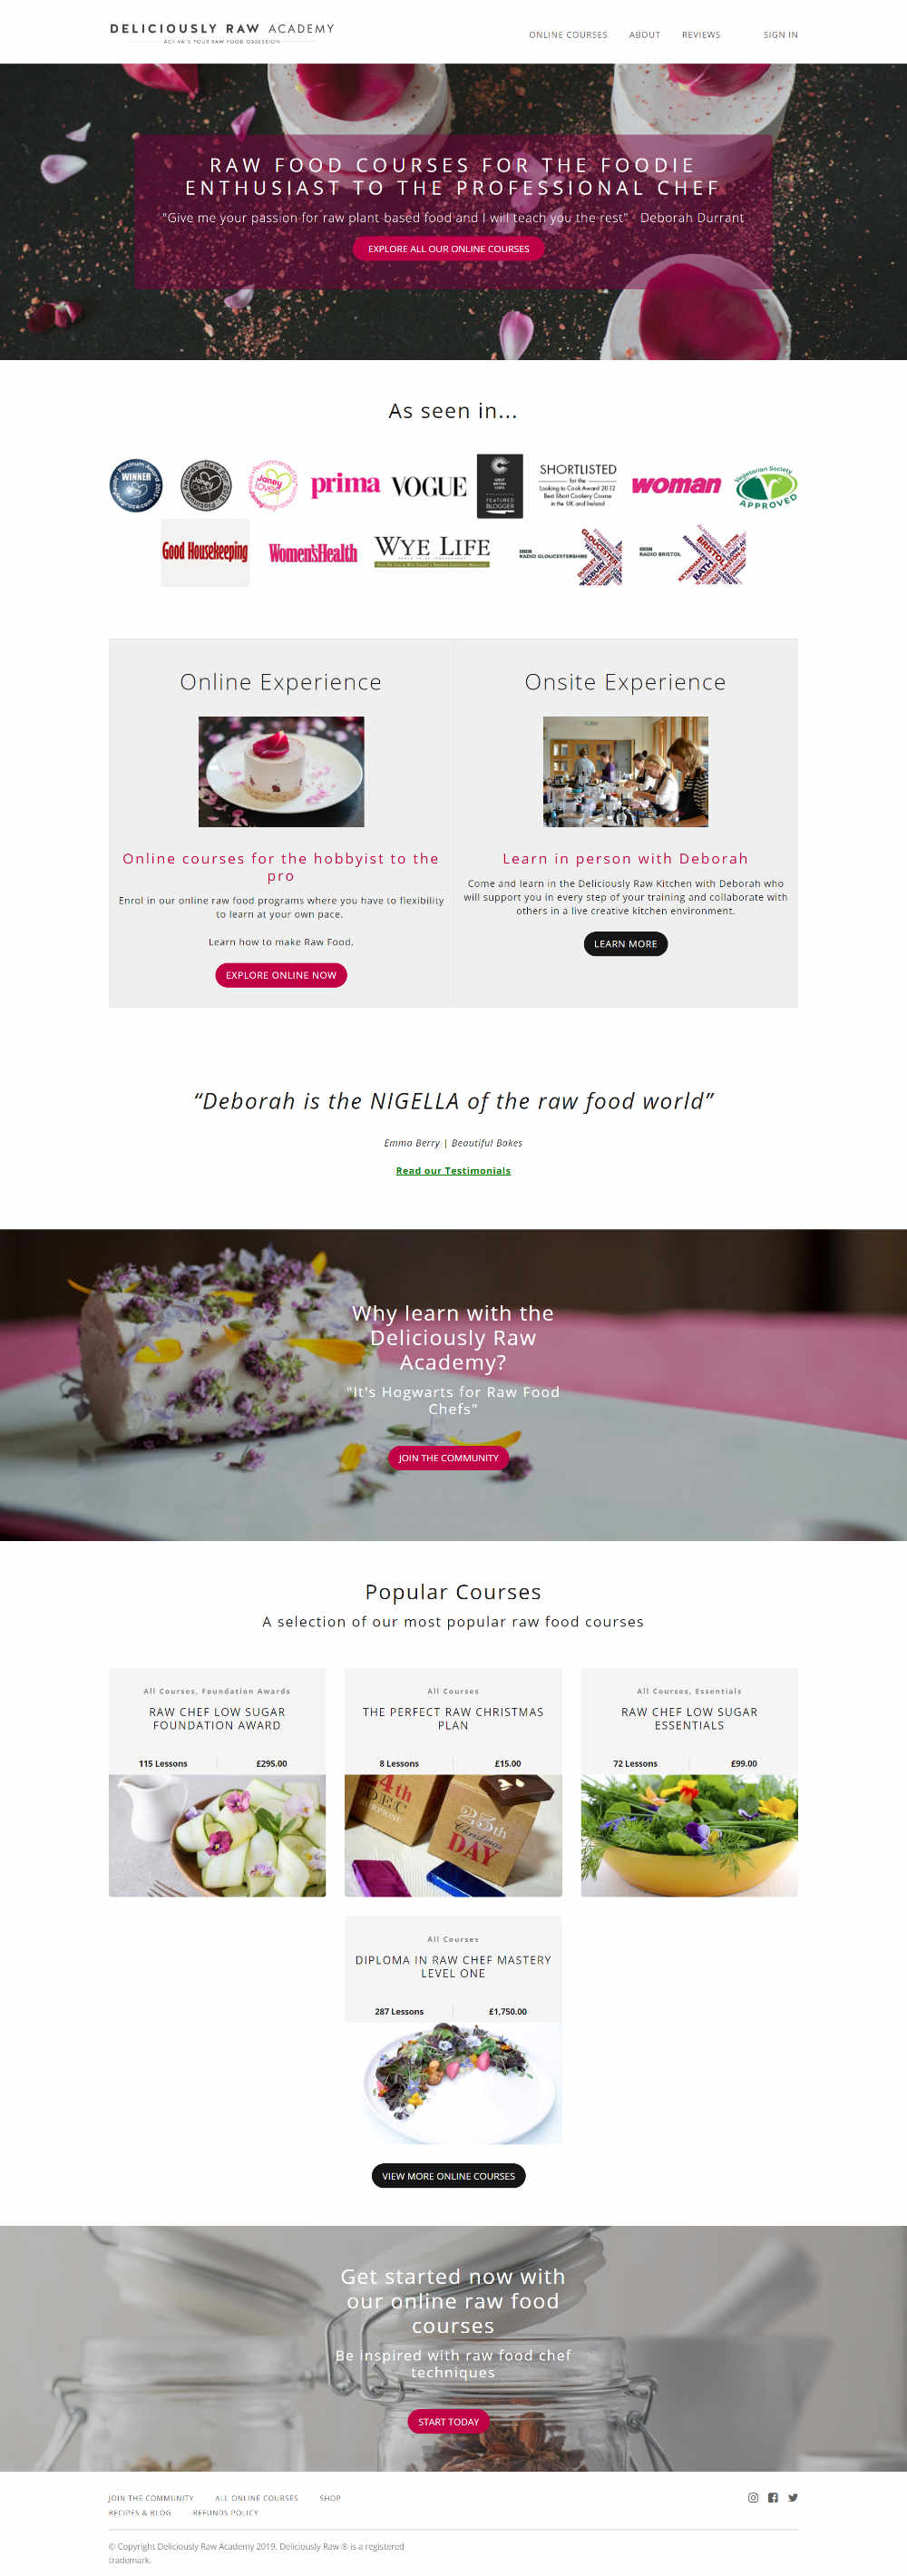 Chef Training Website Design